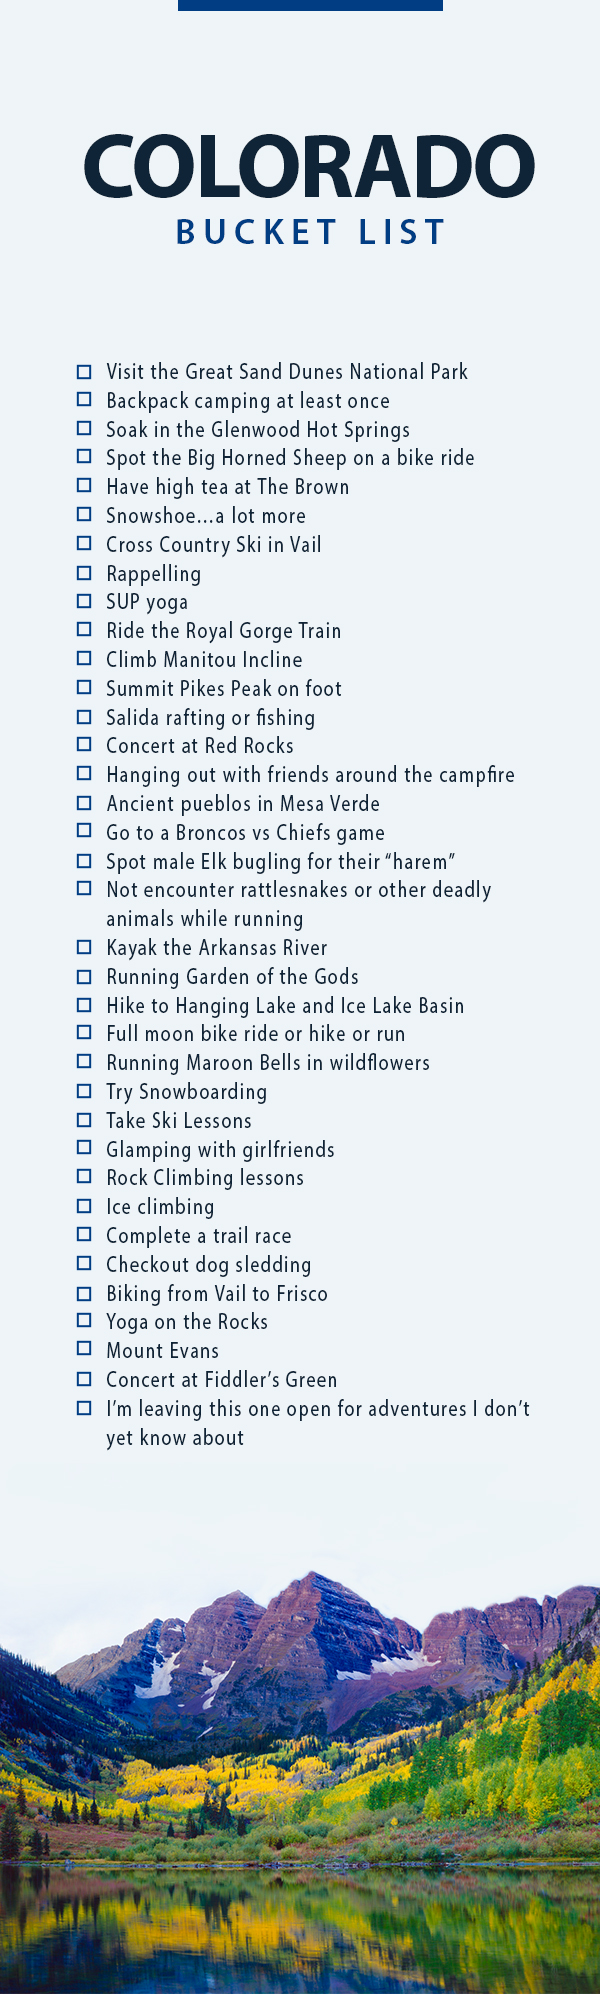 Colorado Must Do and See - A bucket list of adventurous ideas